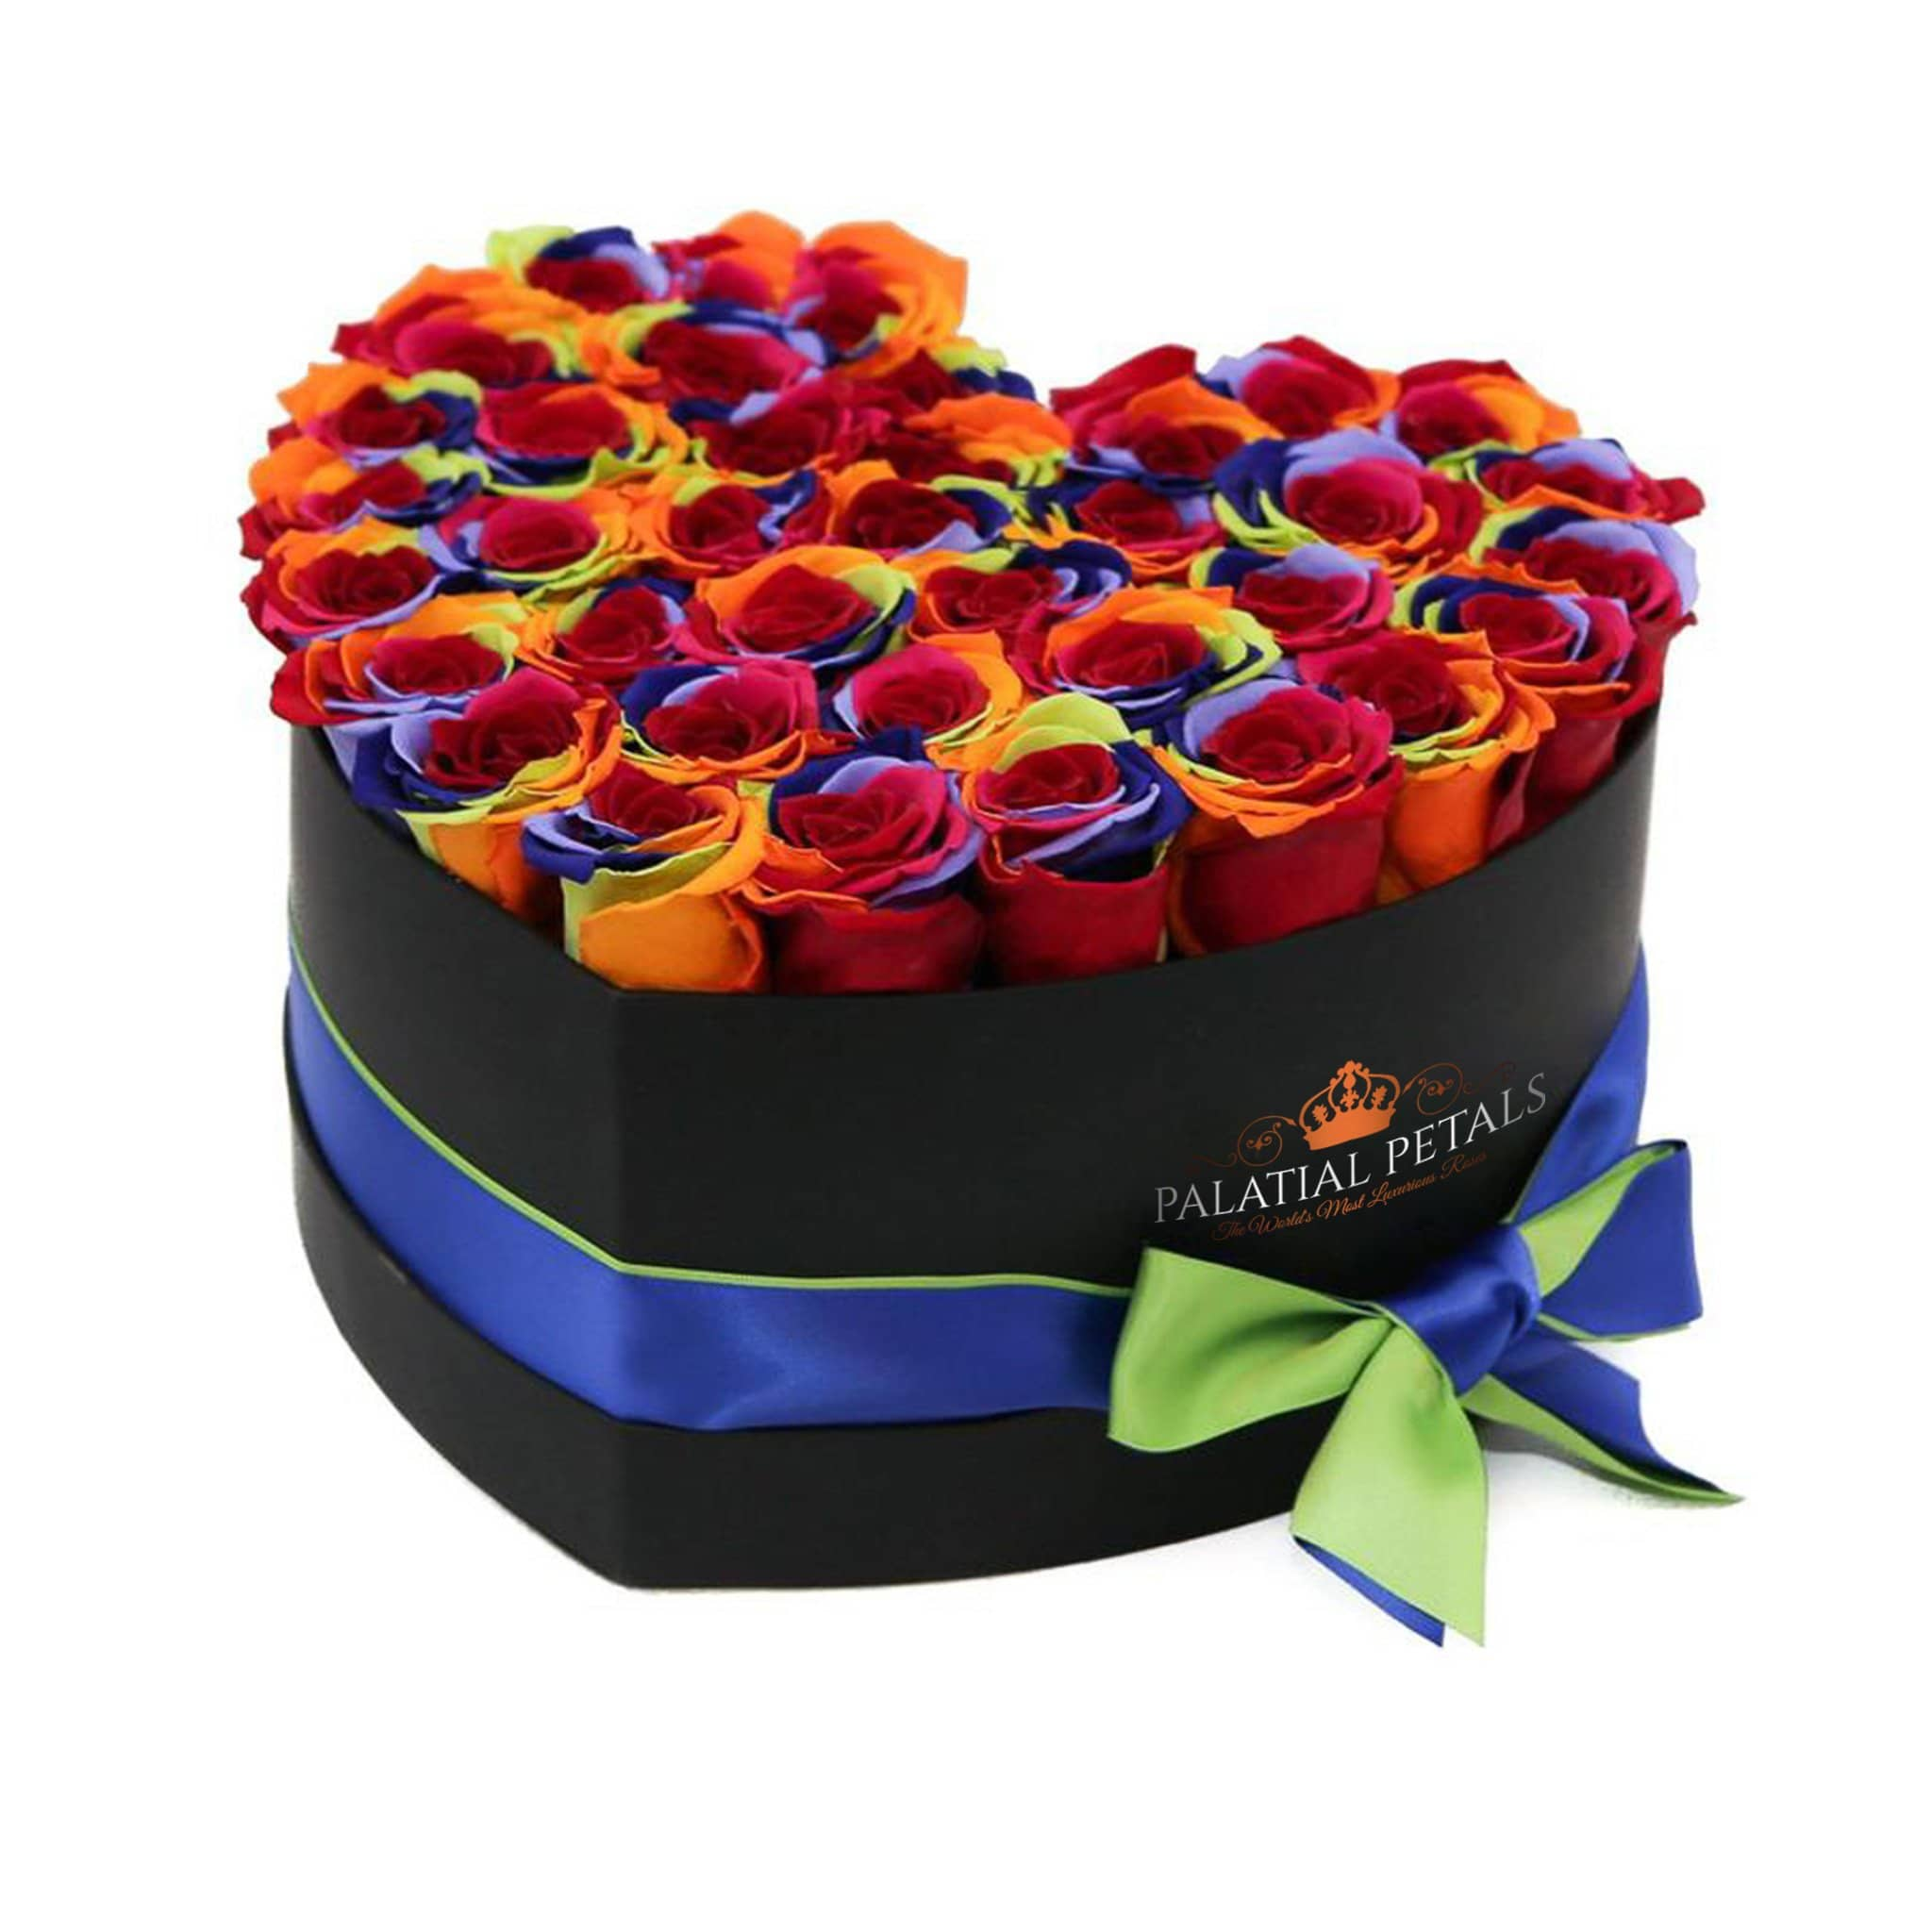 Rainbow Roses That Last A Year - Love Heart Rose Box